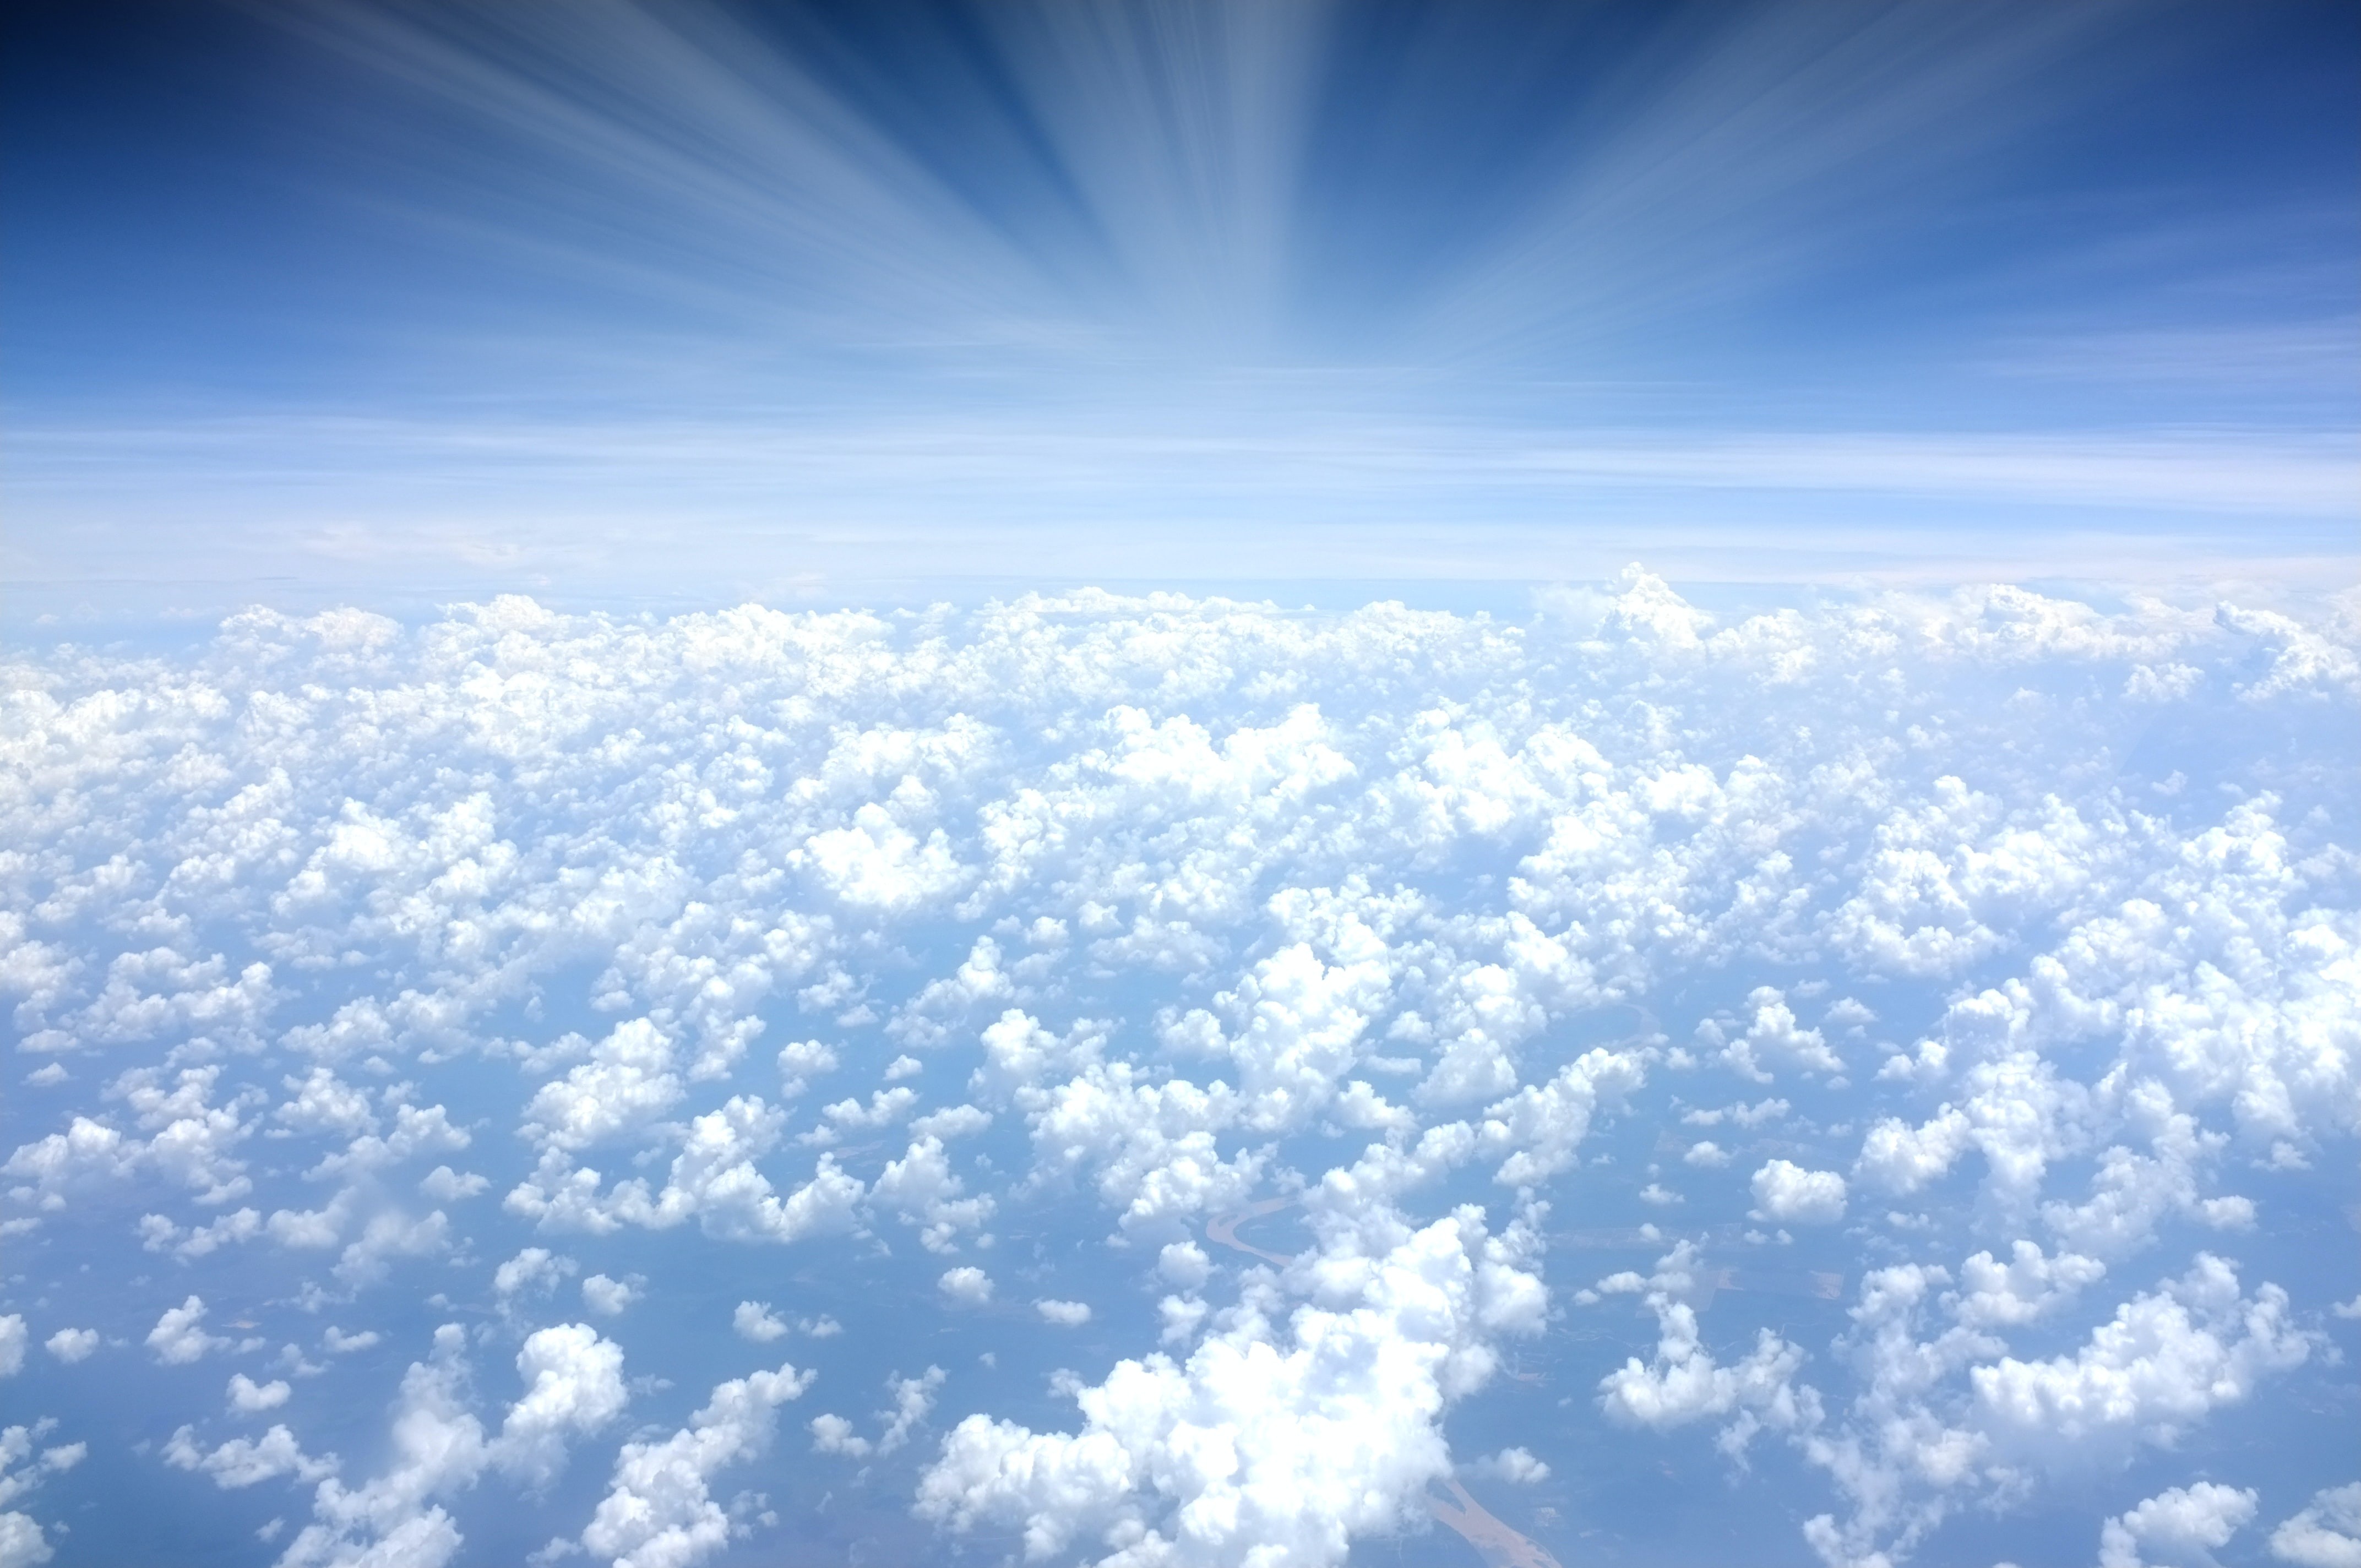 aerial photograph of clouds